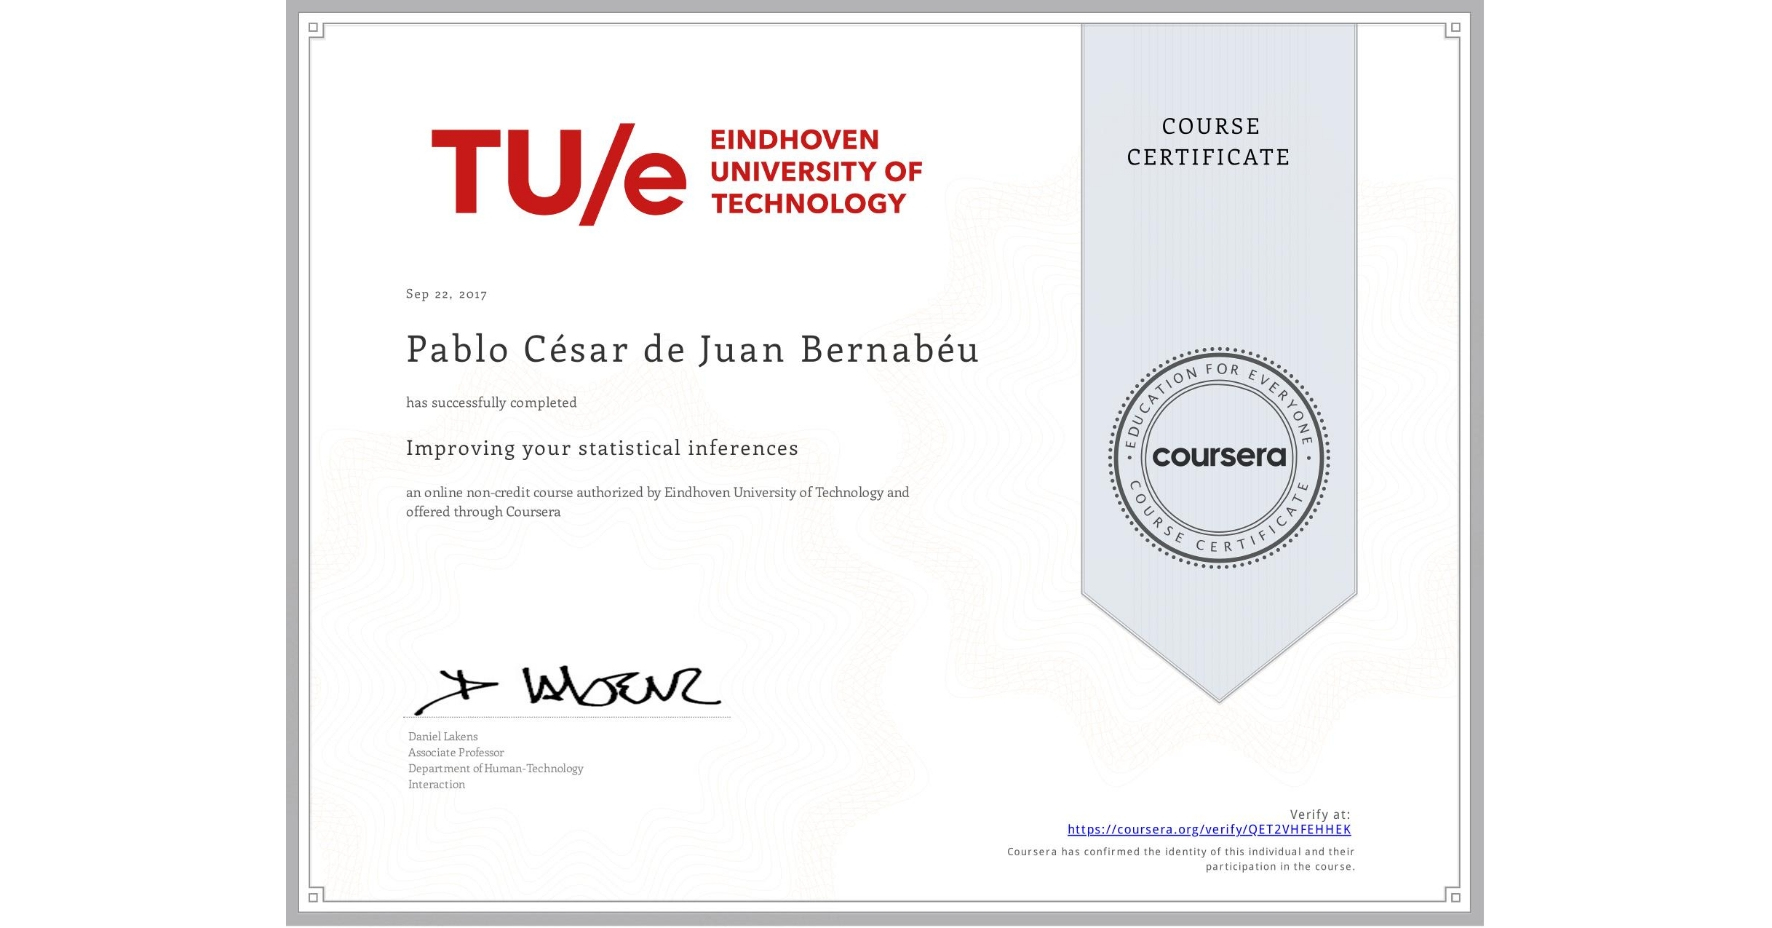 View certificate for Pablo César  de Juan Bernabéu, Improving your statistical inferences, an online non-credit course authorized by Eindhoven University of Technology and offered through Coursera